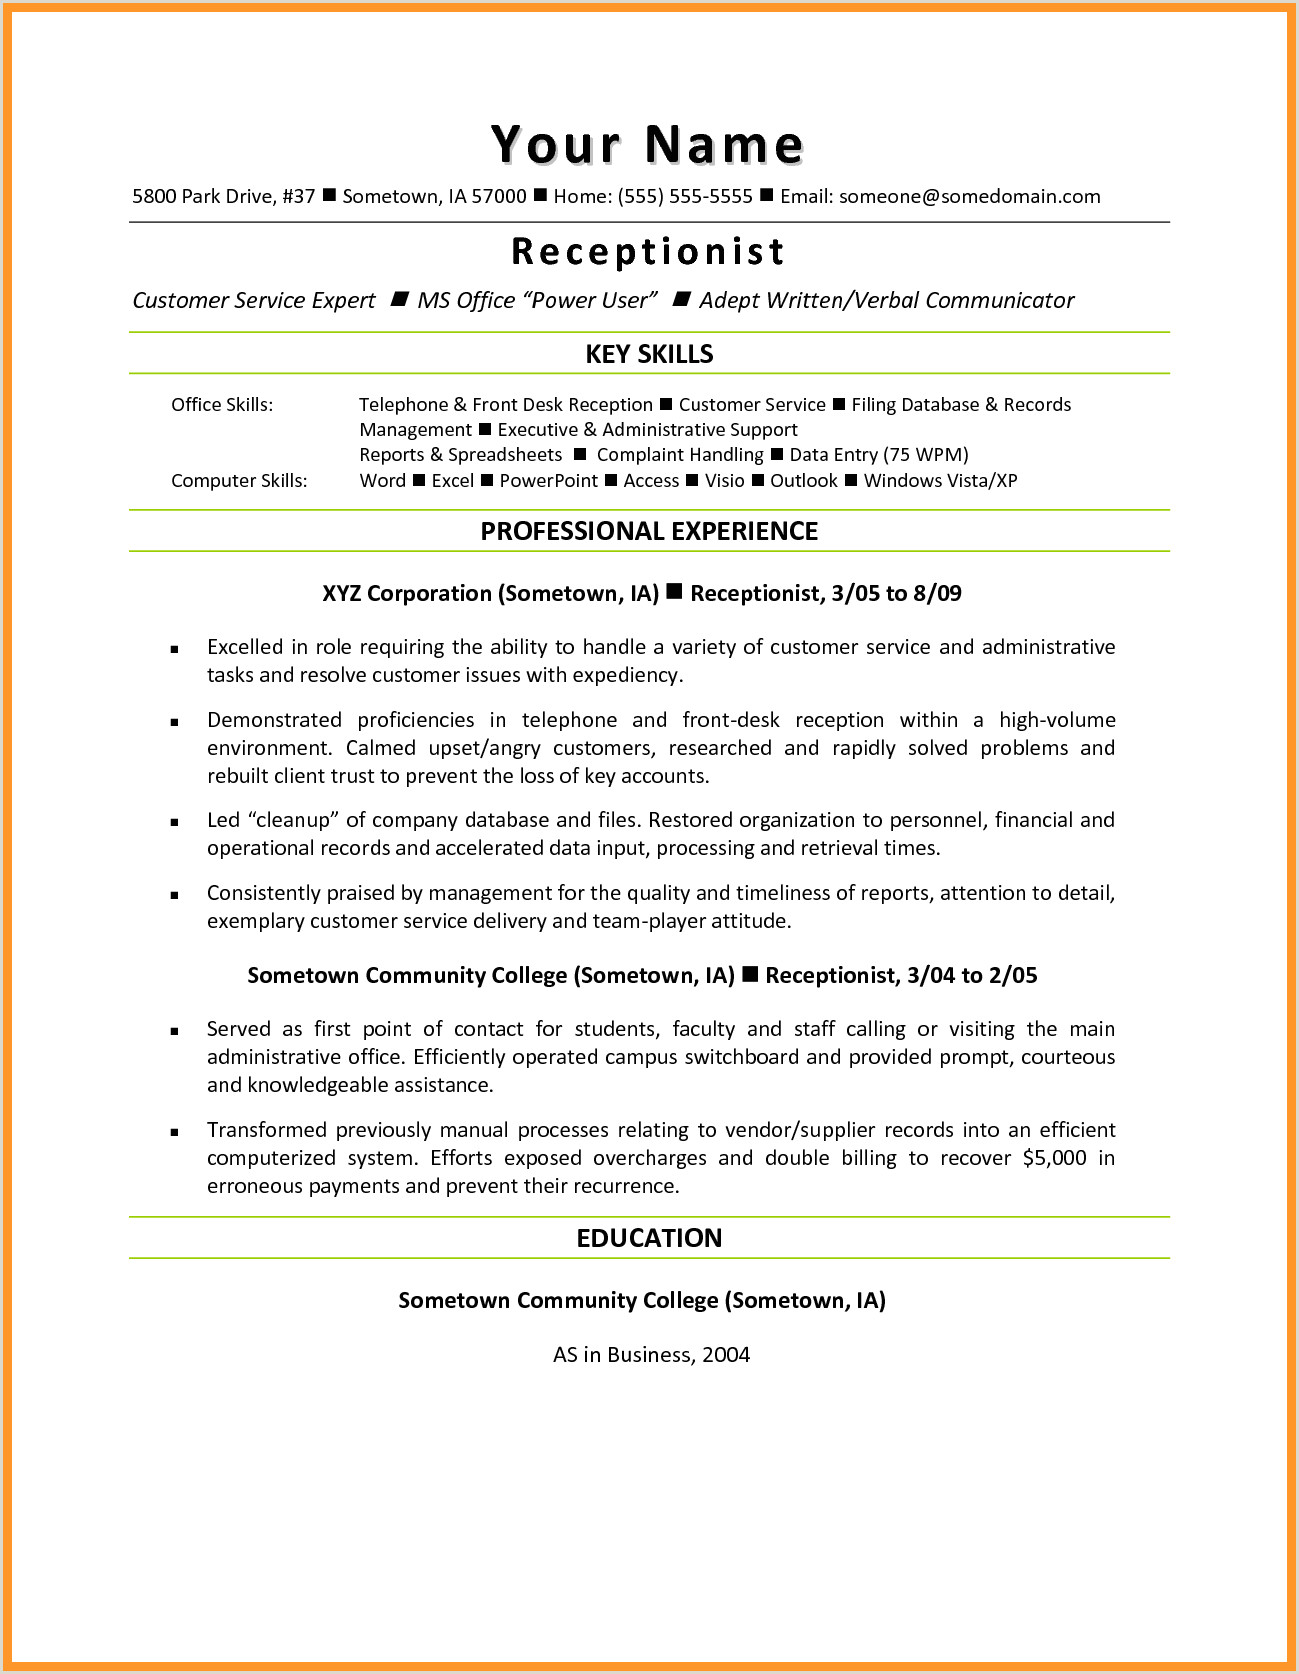 Resume for Front Desk Receptionist 12 13 Sample Resumes for Front Desk Receptionist